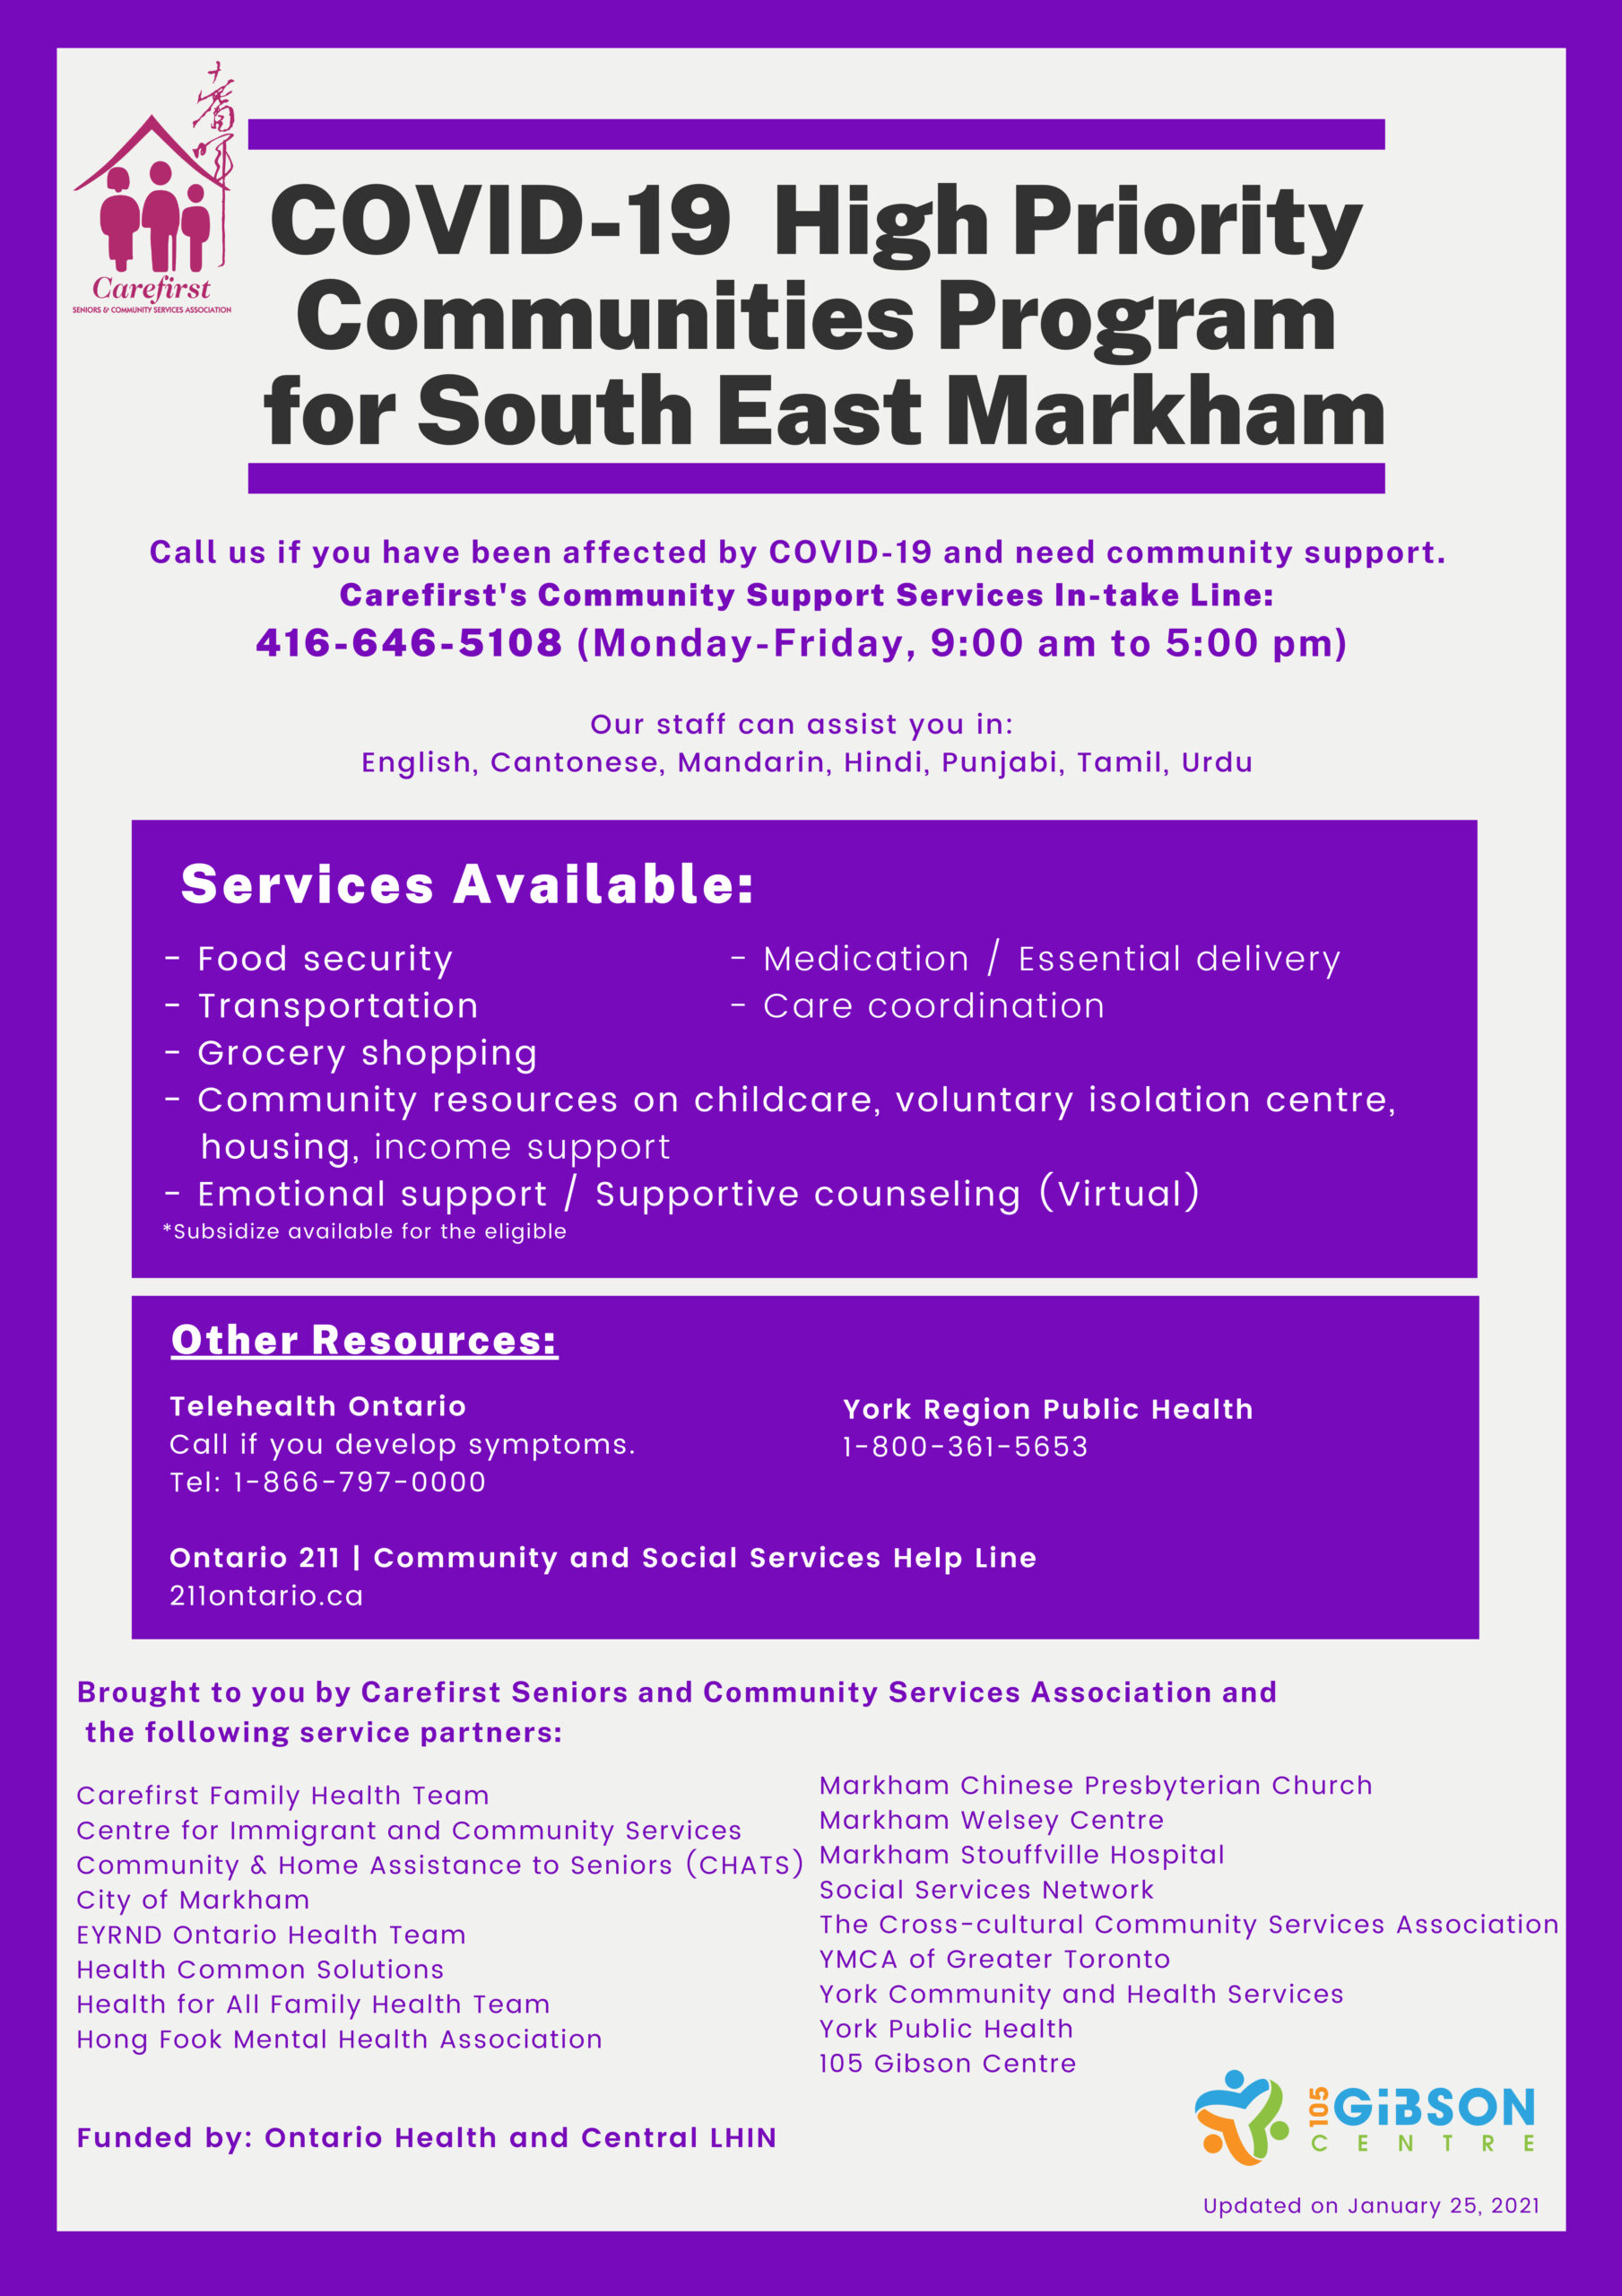 Covid-19 High Priority Communities Program for South East Markham Information Flyer